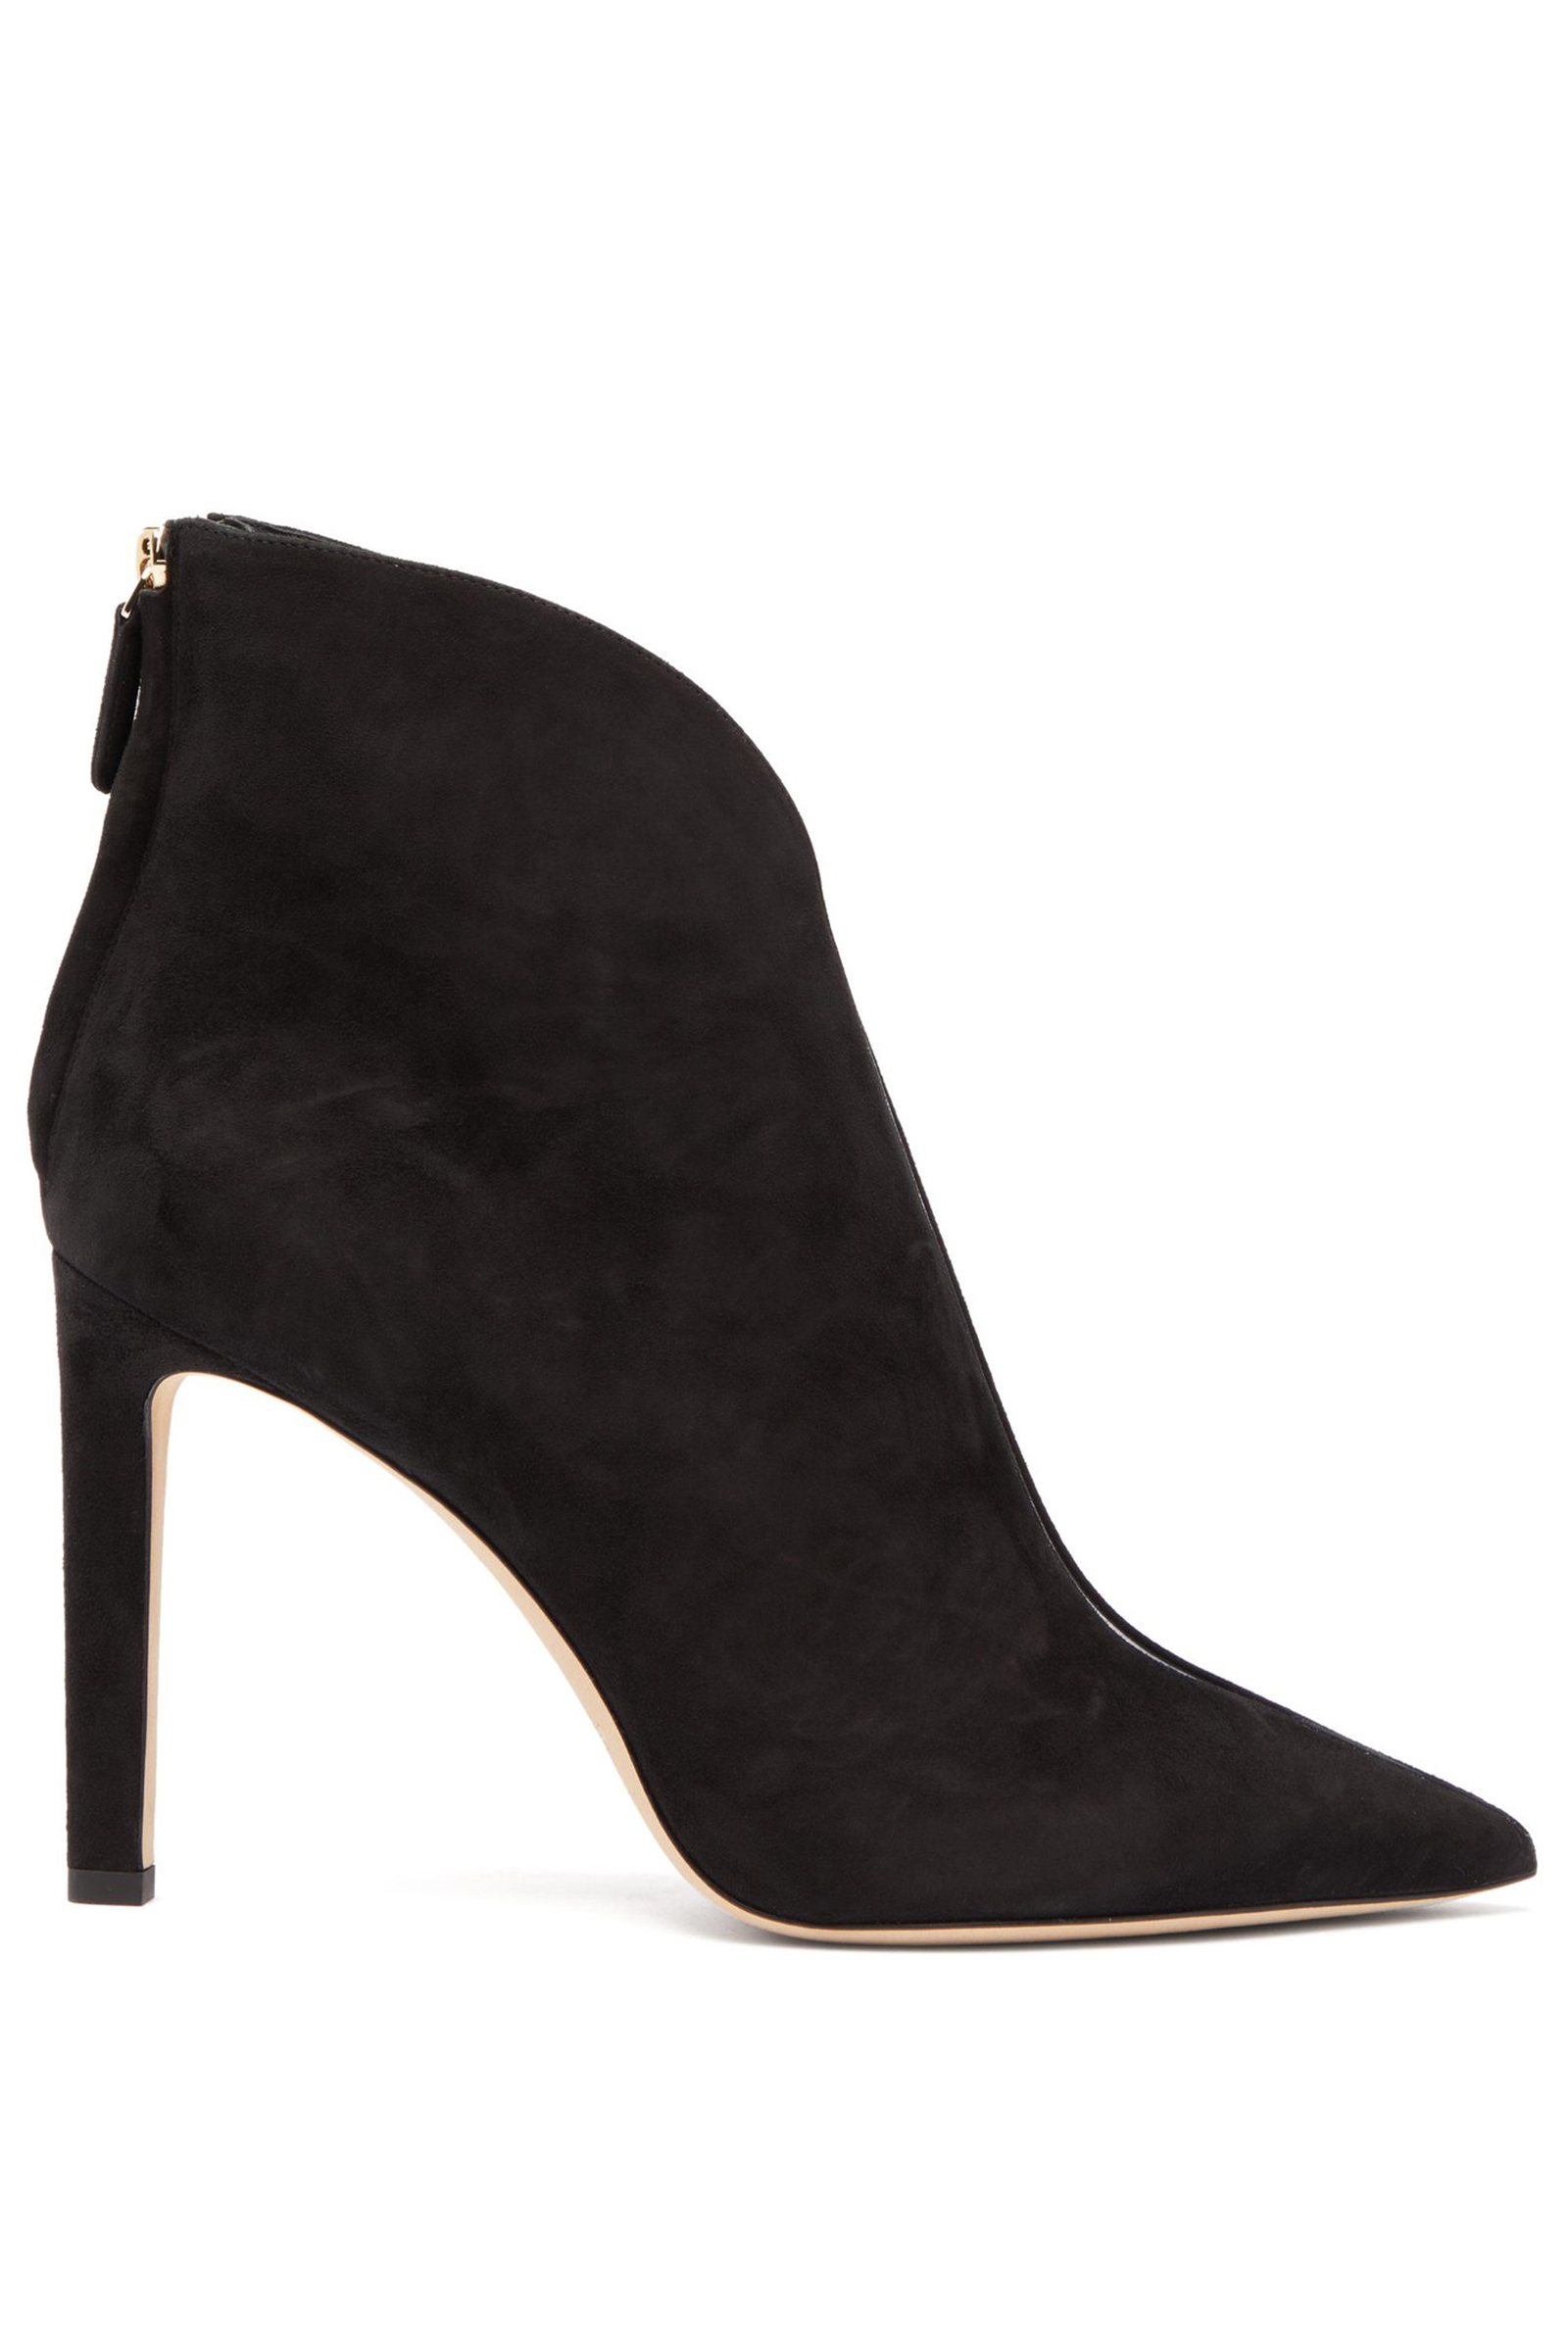 a78504178a0 Buy Jimmy Choo Bowie 100 Suede Ankle Boots Online